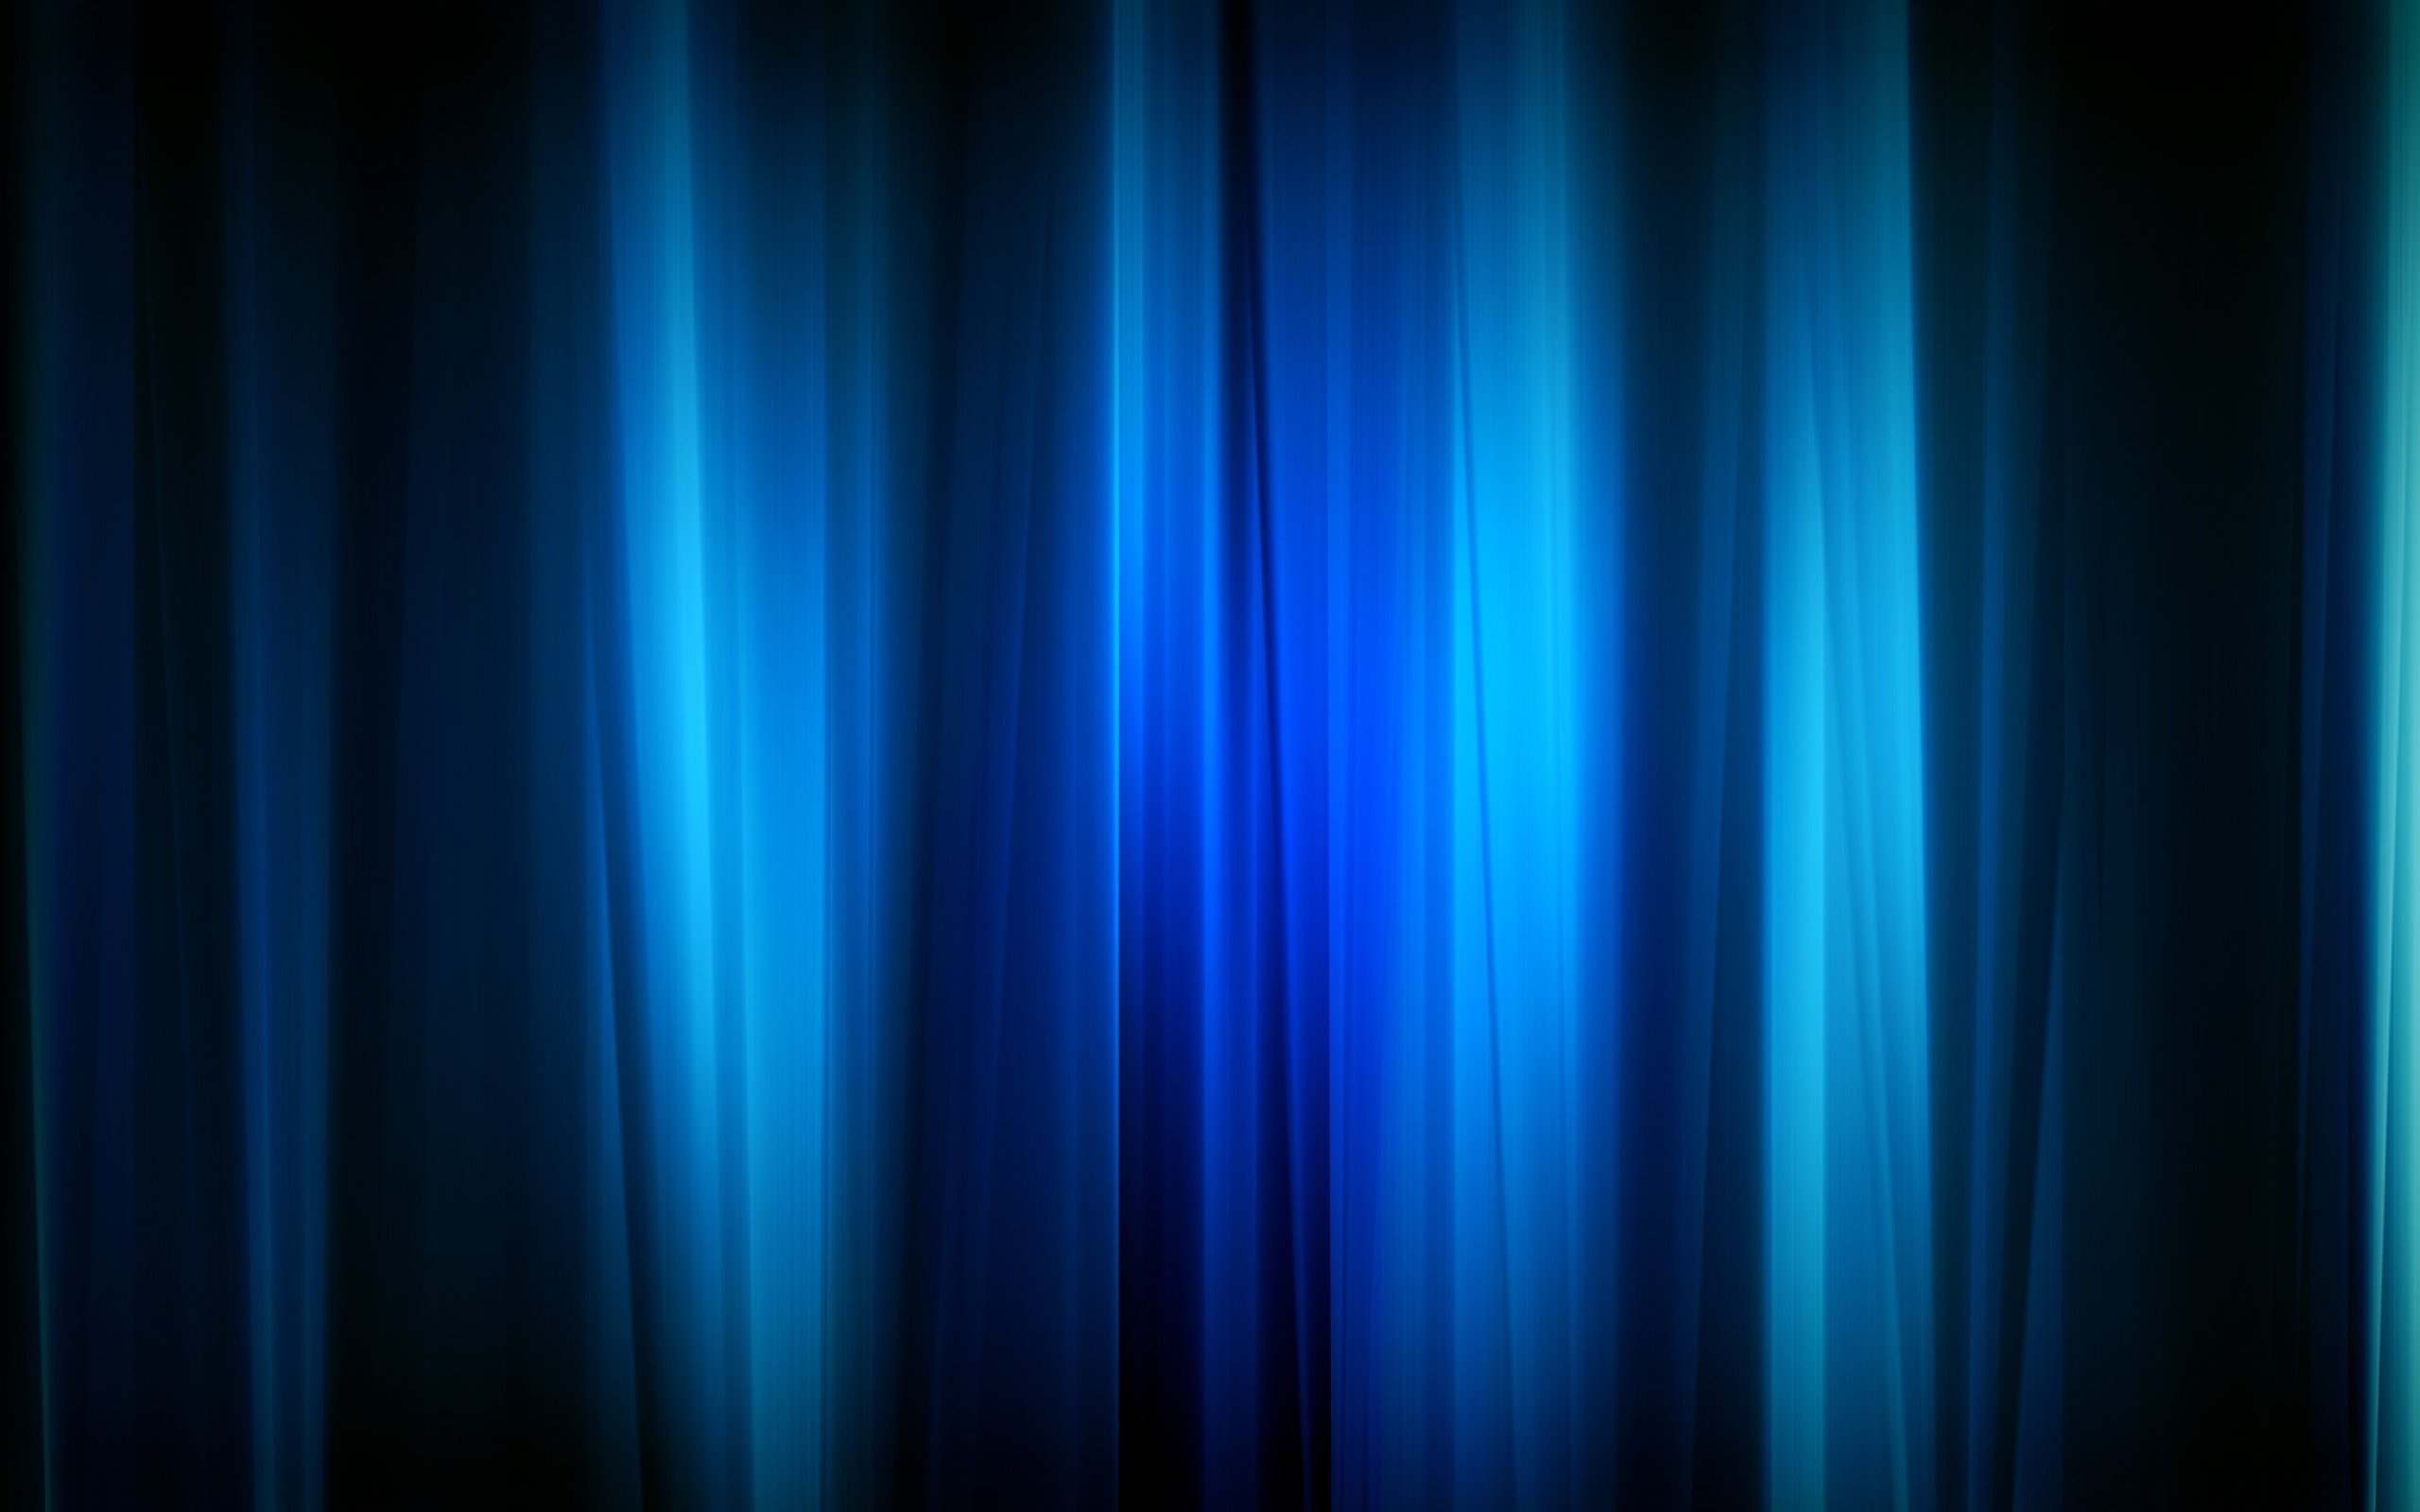 Title beautiful blue shades in black background Black Background and 2560x1600